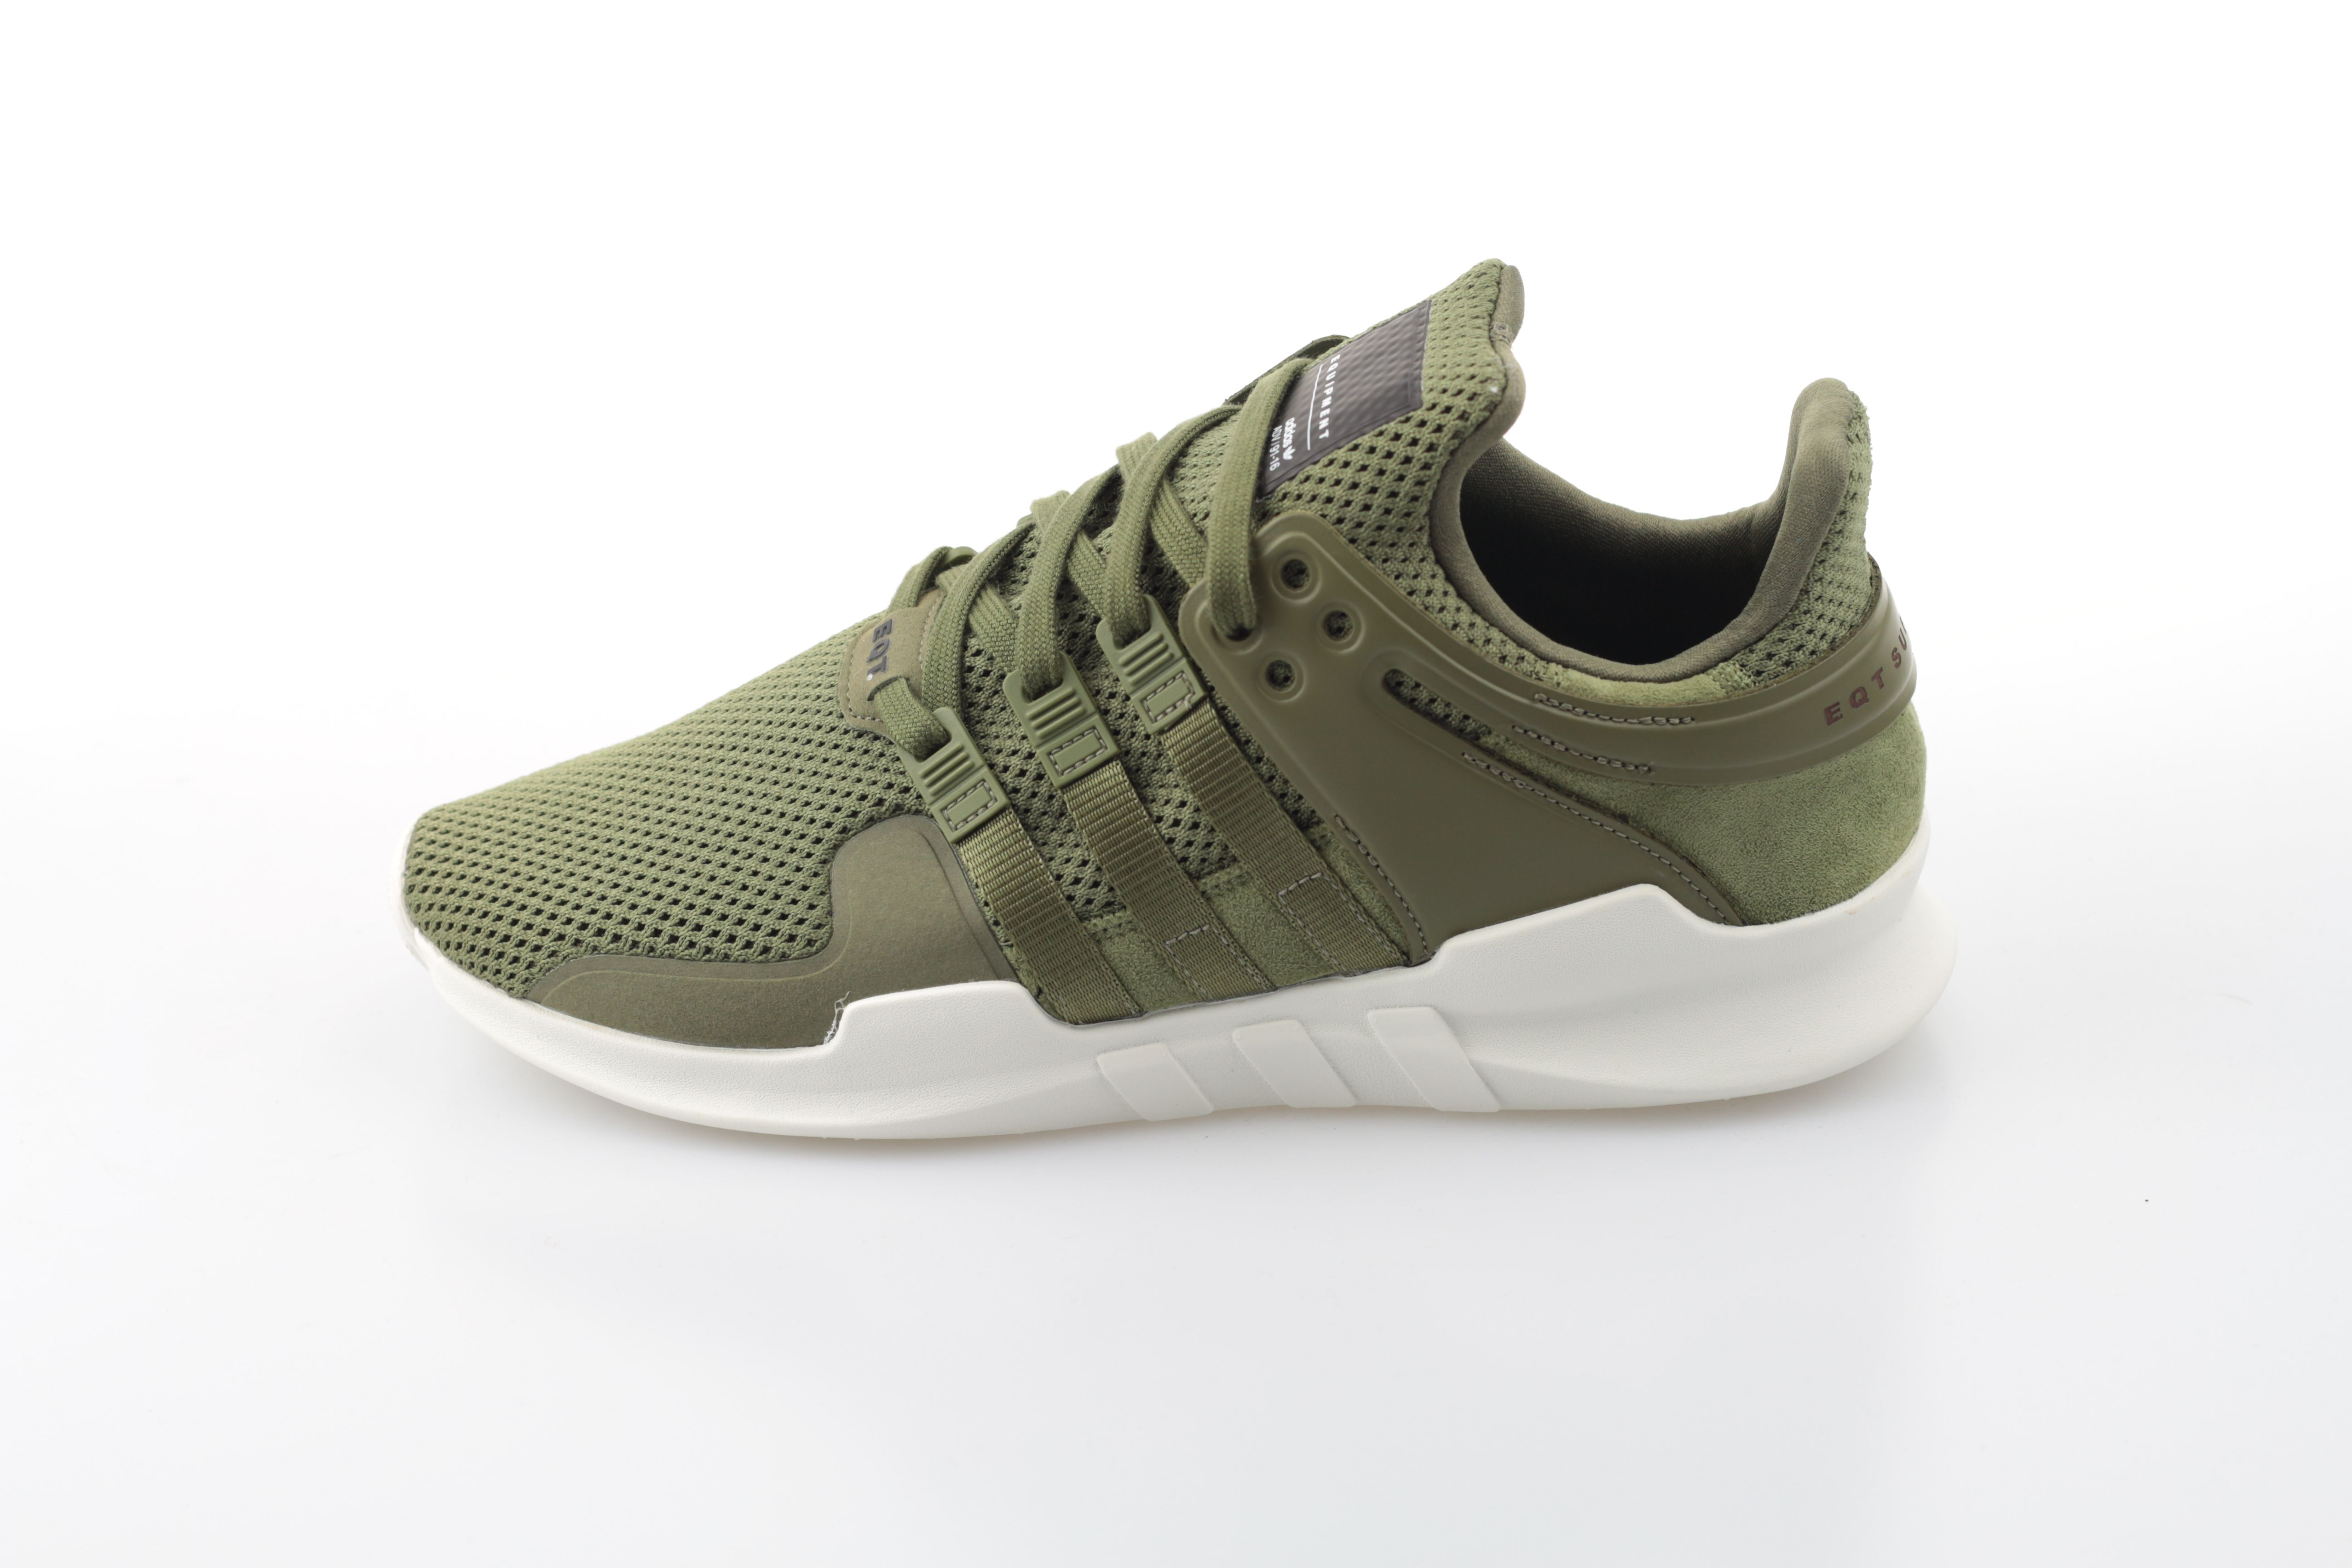 check out 1f87b 39427 adidas Equipment Support ADV 91-16 Farbe: Cargo Olive / Cargo Olice / Red  Material: Mesh